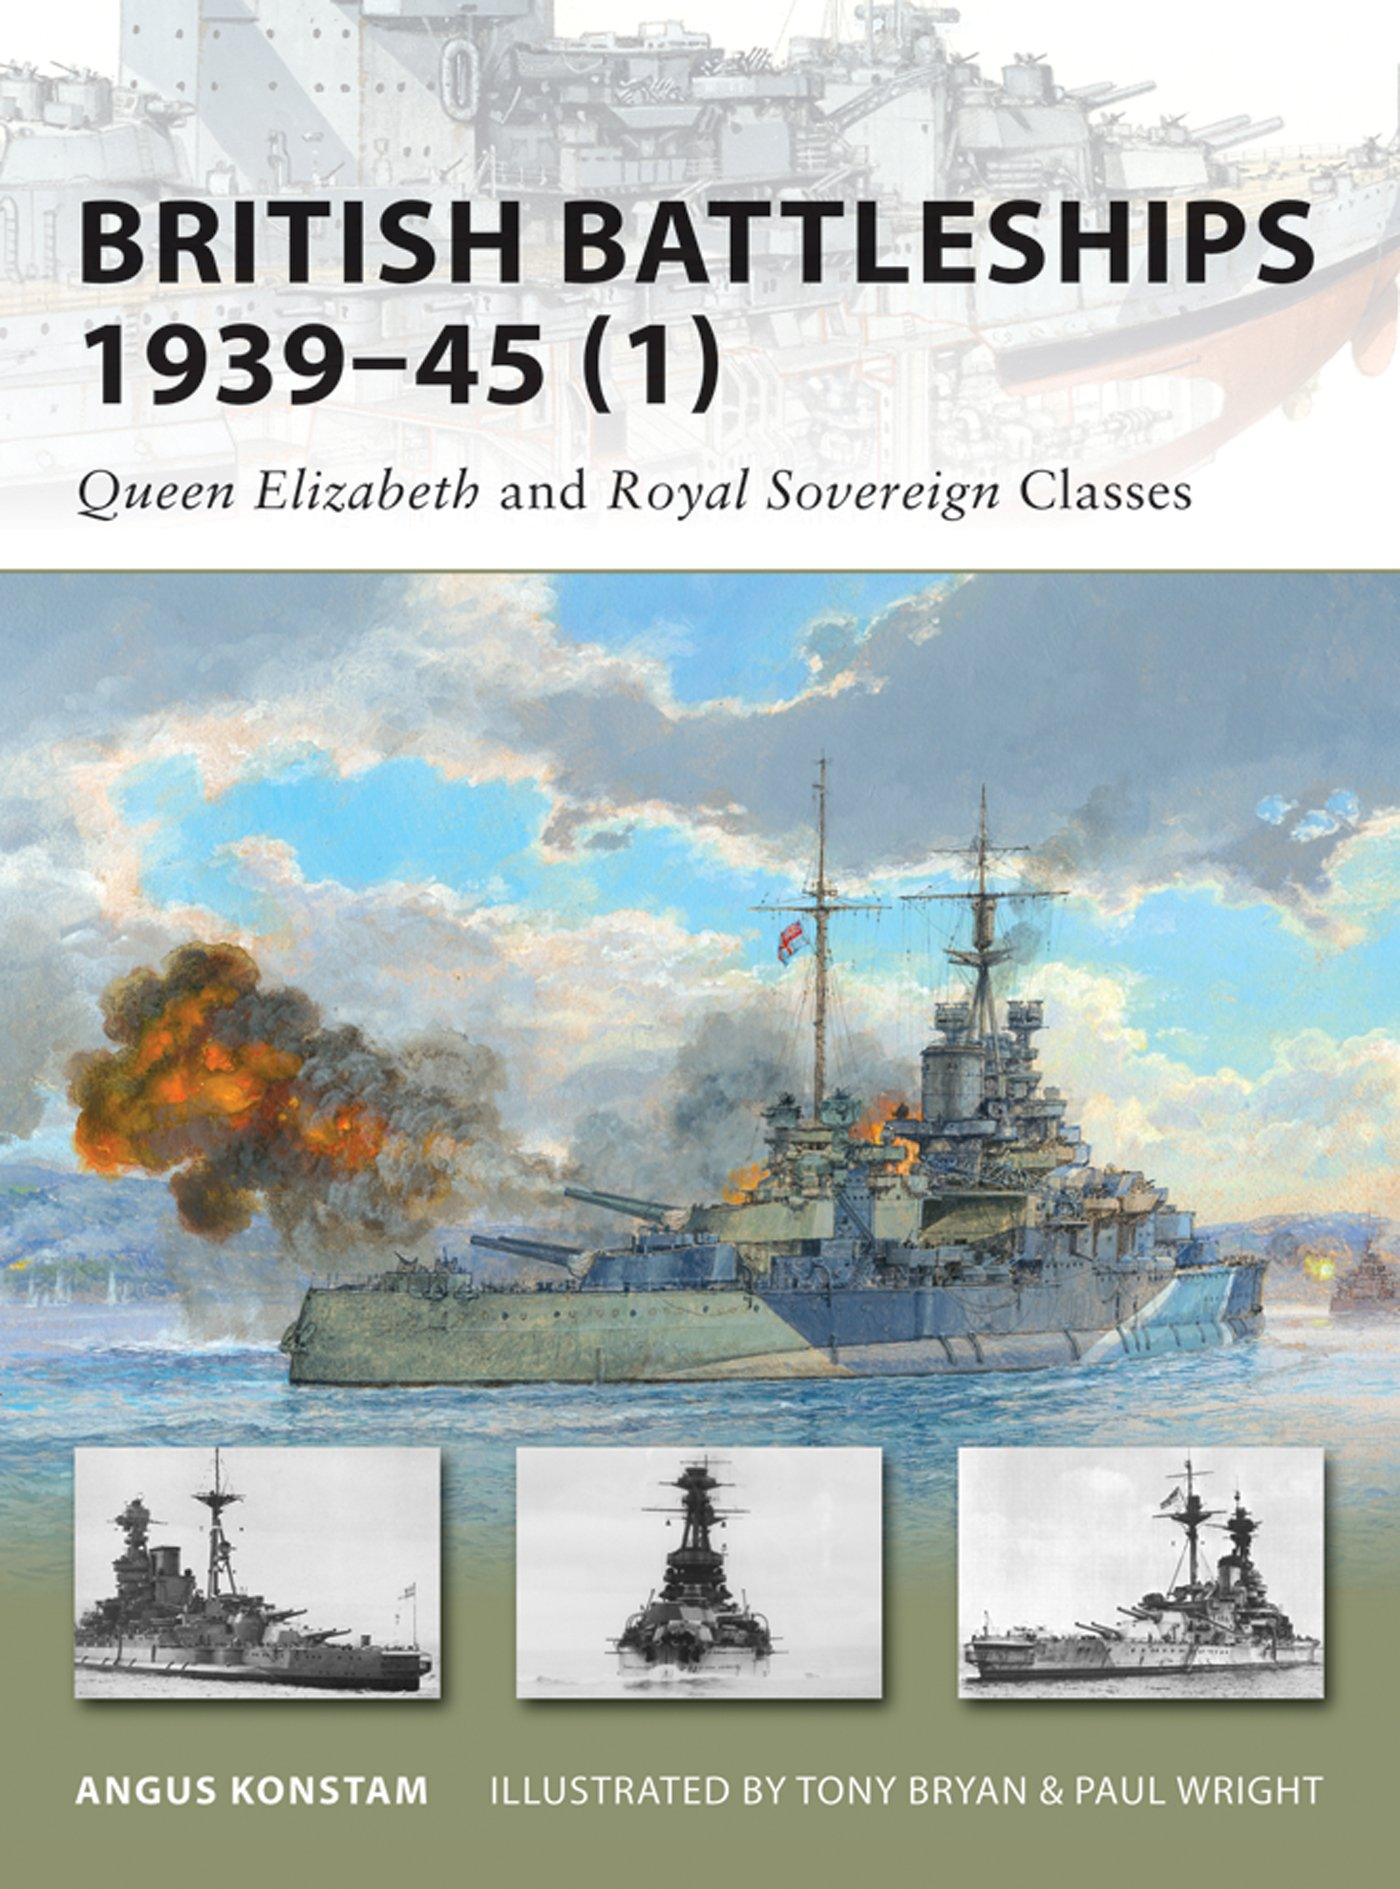 British Battleships 1939-45 (1): Queen Elizabeth and Royal Sovereign Classes (New Vanguard Book 154)